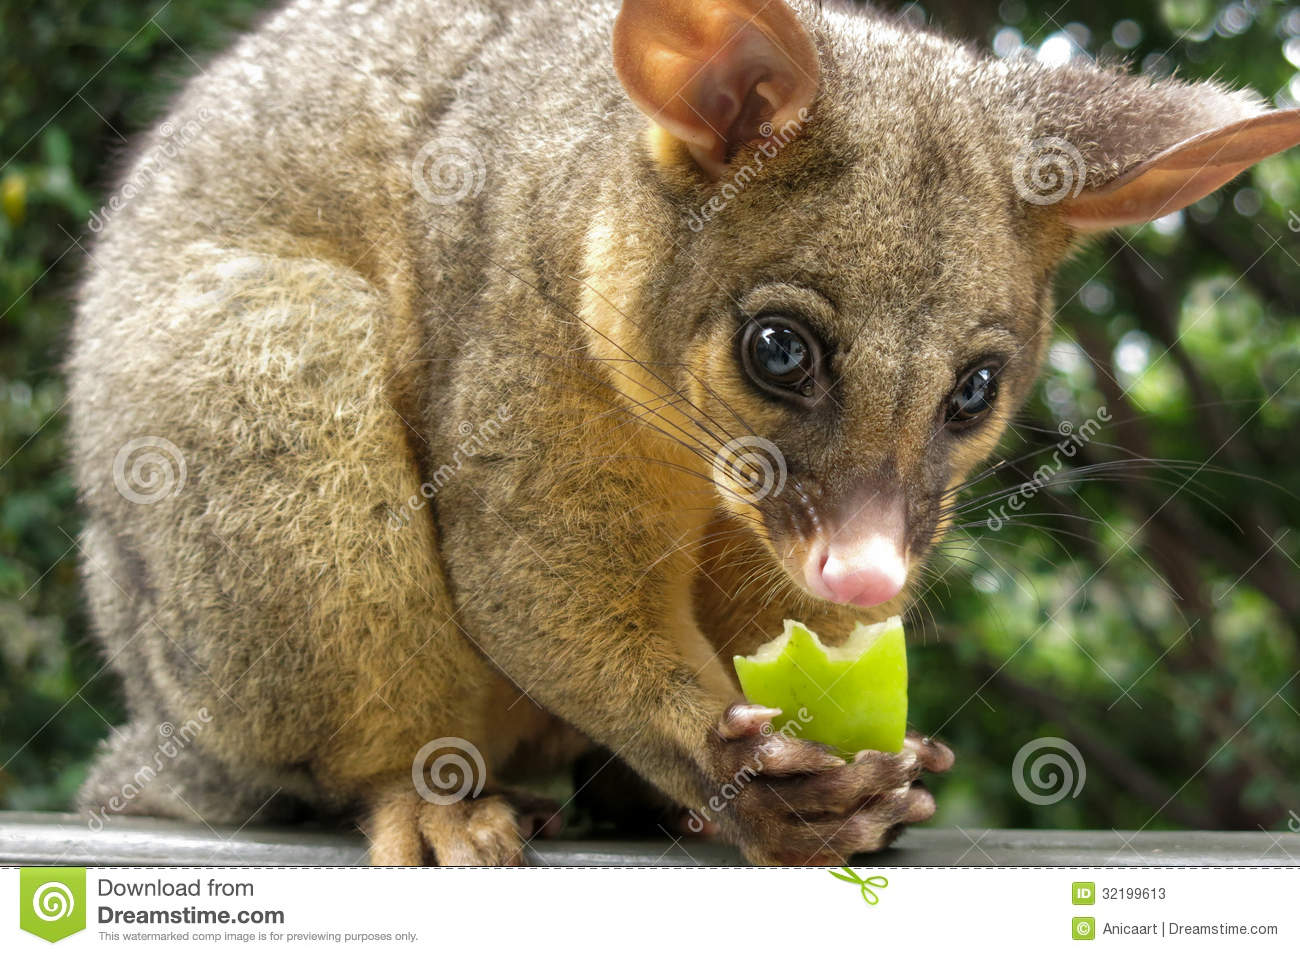 Brushtail Possum clipart #12, Download drawings